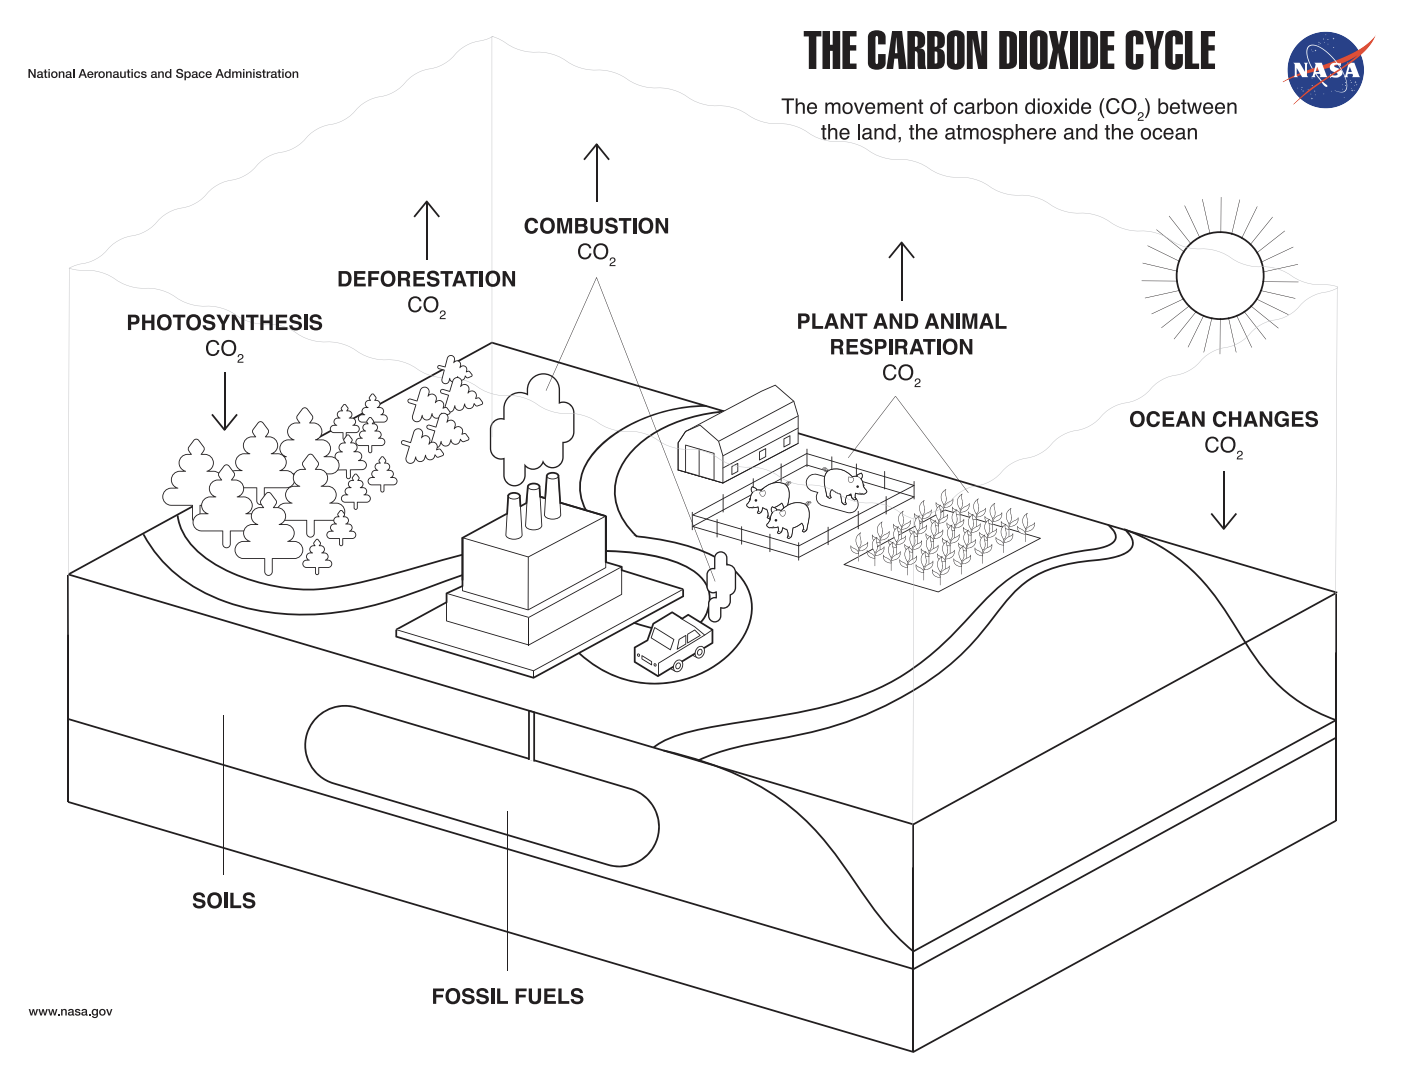 Coloring Page: The Carbon Dioxide Cycle